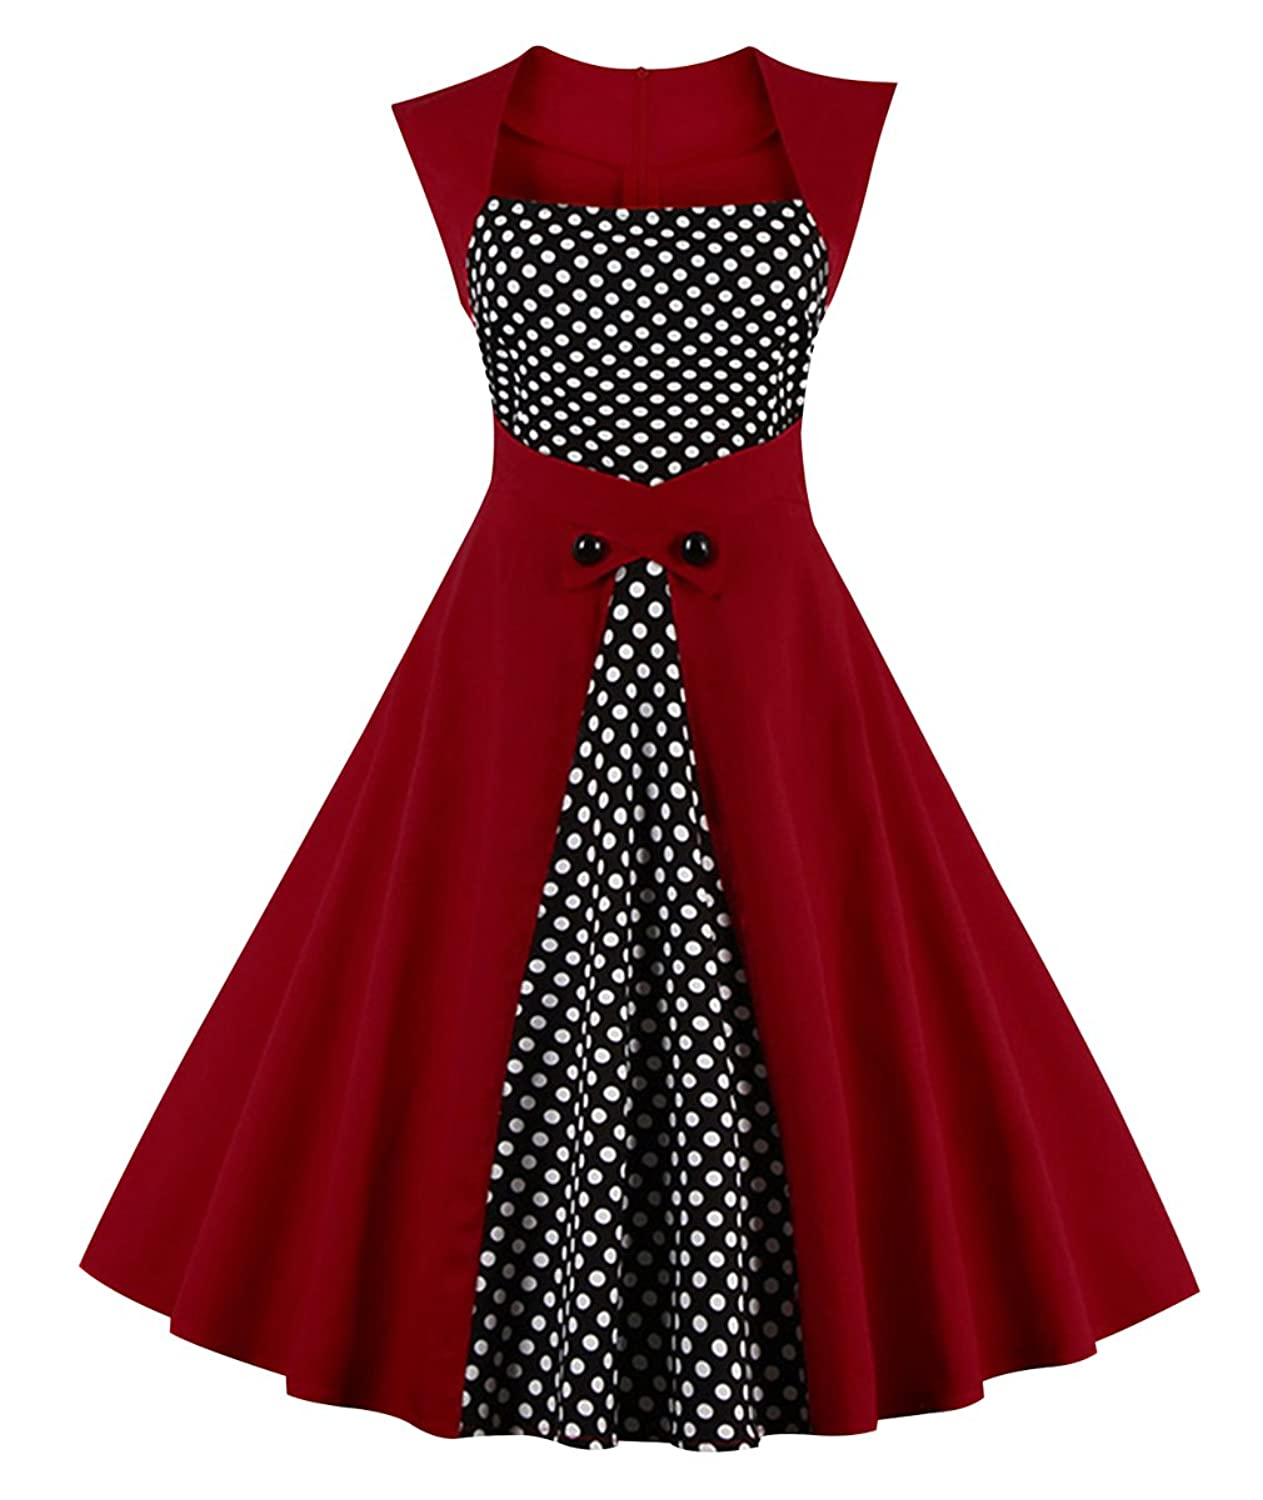 d753e25f5bcd7 Online Cheap wholesale Killreal Womens Polka Dot Retro Vintage Style  Cocktail Party Swing Dress Cocktail Suppliers